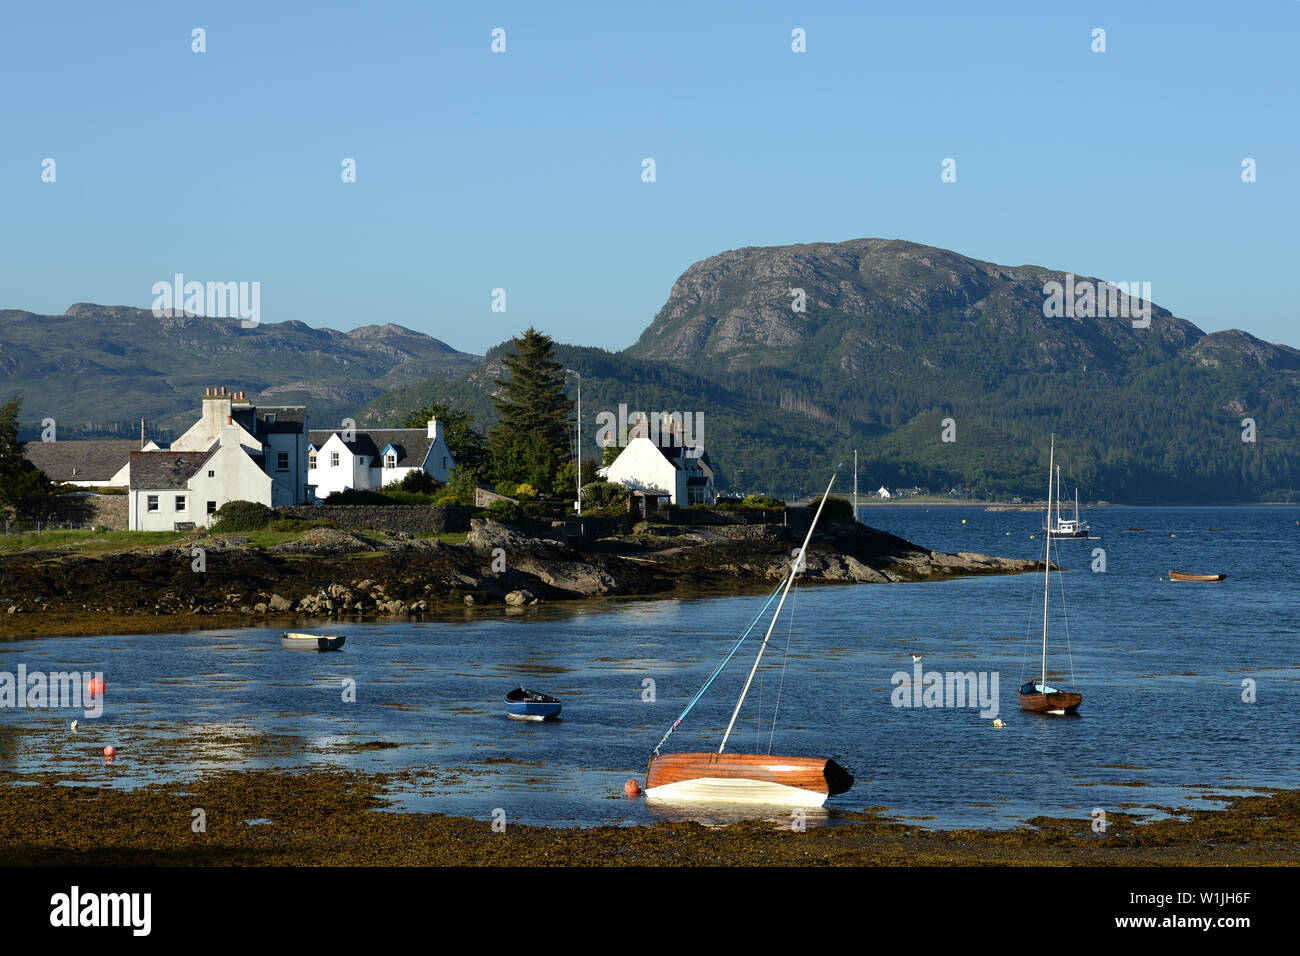 Plockton in the Highlands of Scotland in Lochalsh, Wester Ross on the shores of Loch Carron is a small village centred on the beautiful bay - Stock Image